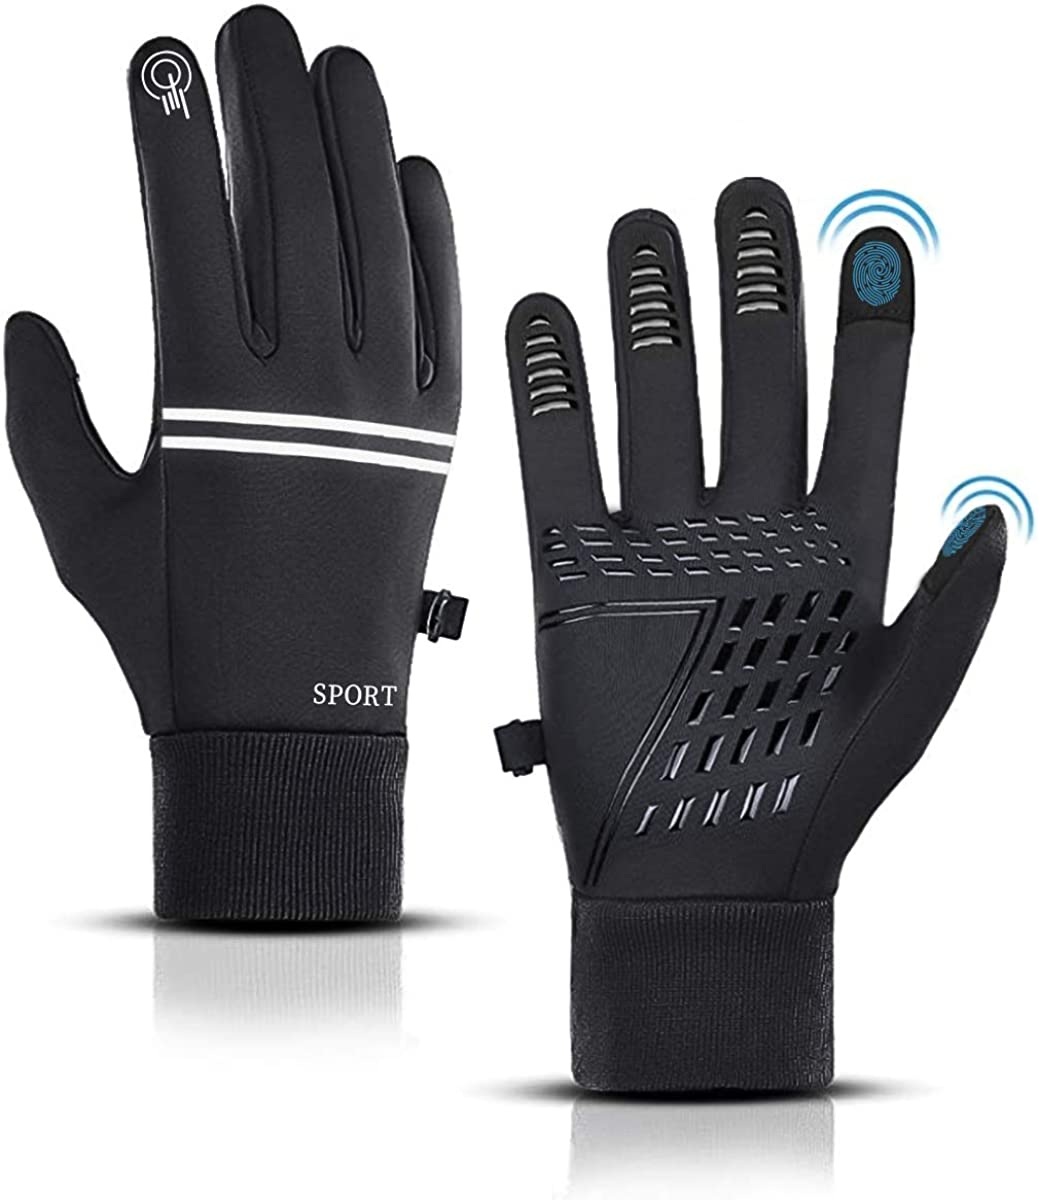 Winter Gloves Gifts for Men Women Running Outdoor Sports Gloves Touch Screen Anti-slip Waterproof Windproof Thermal Gloves for Cycling Running Hiking Driving Alintor Cycling Gloves